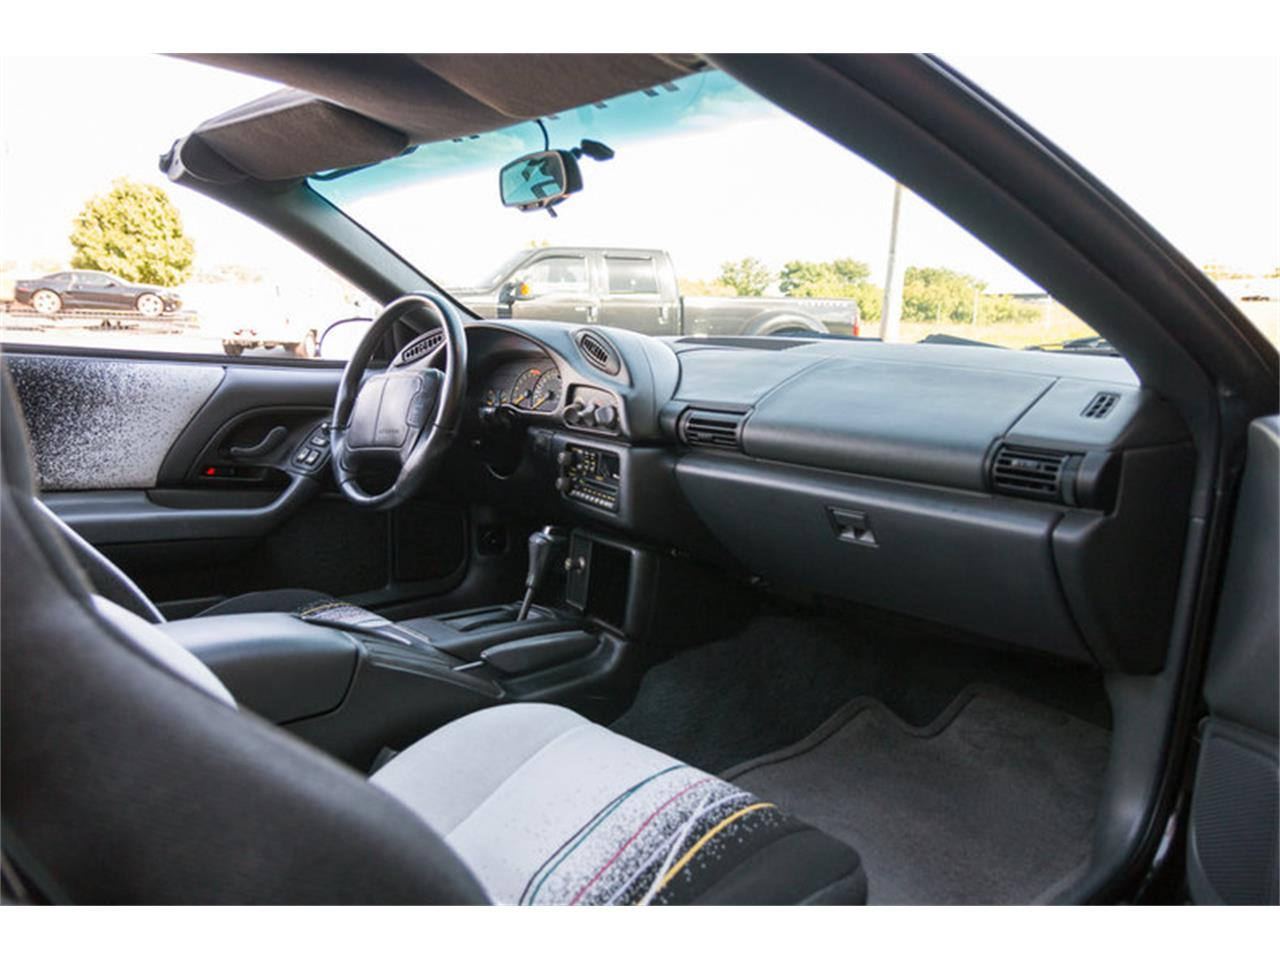 Large Picture of '93 Chevrolet Camaro located in St. Charles Missouri Offered by Fast Lane Classic Cars Inc. - LAVL